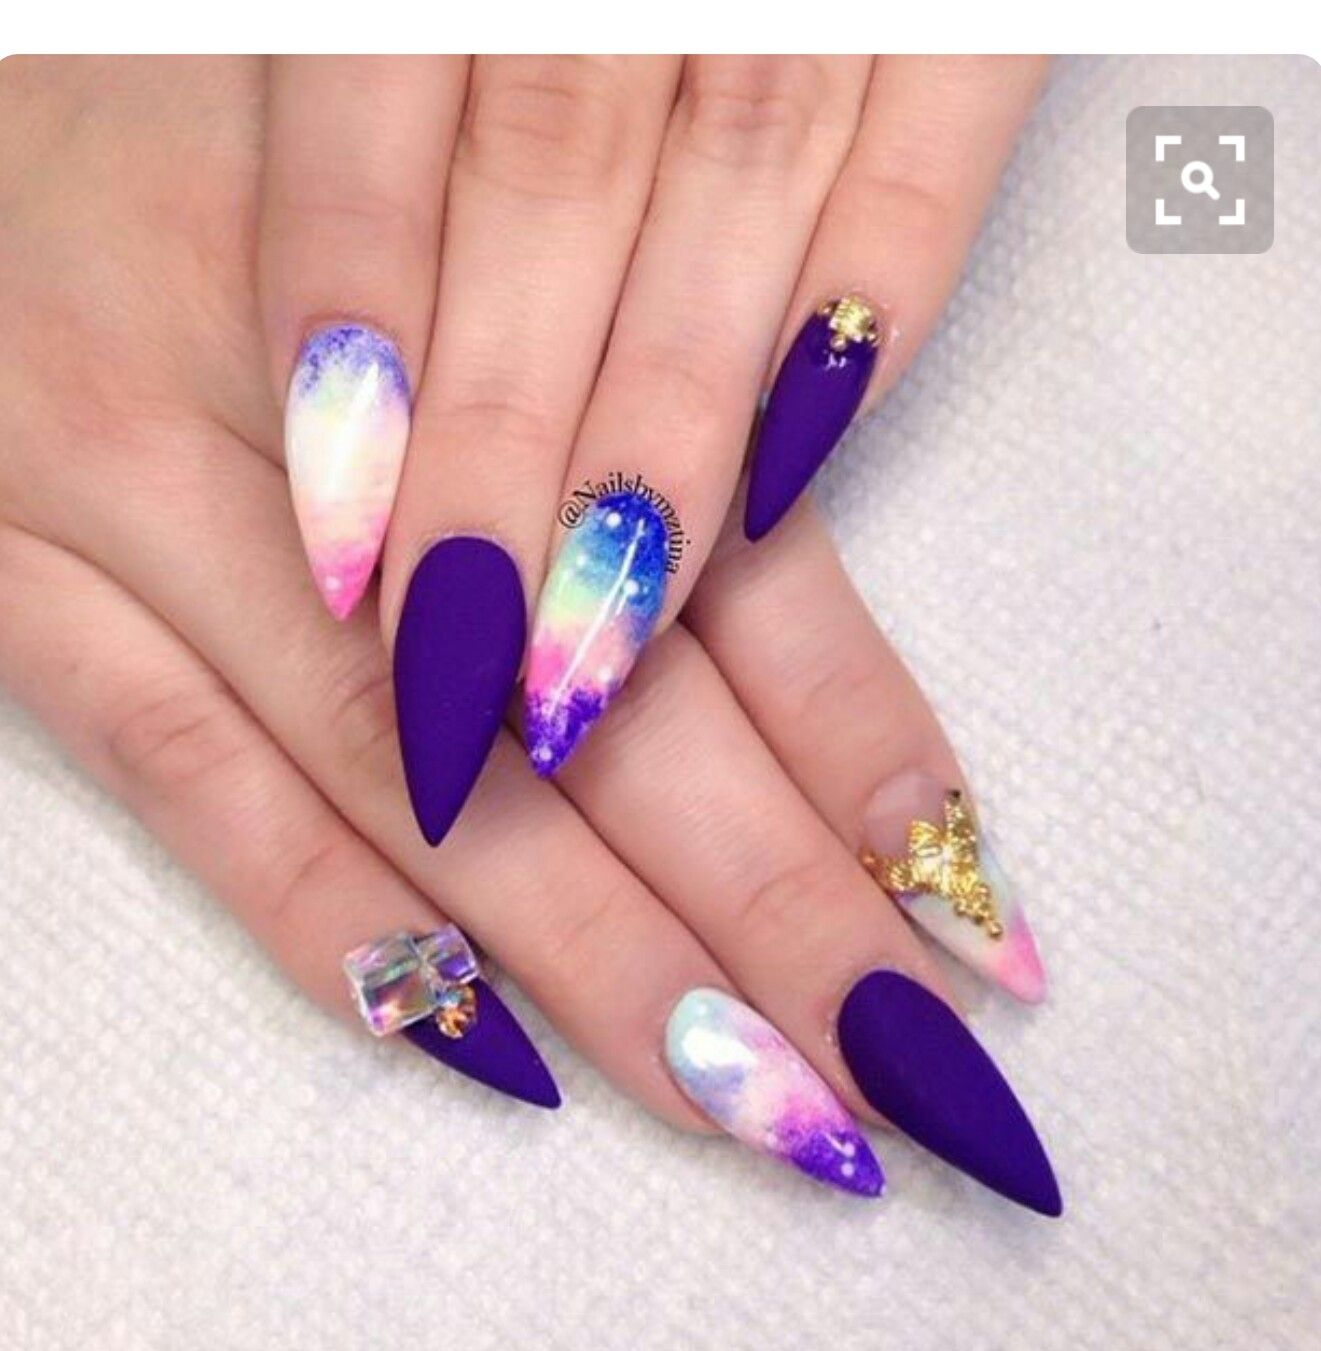 Pin by nikki franssen on nails pinterest sns nails and matte nails matte nails prinsesfo Choice Image